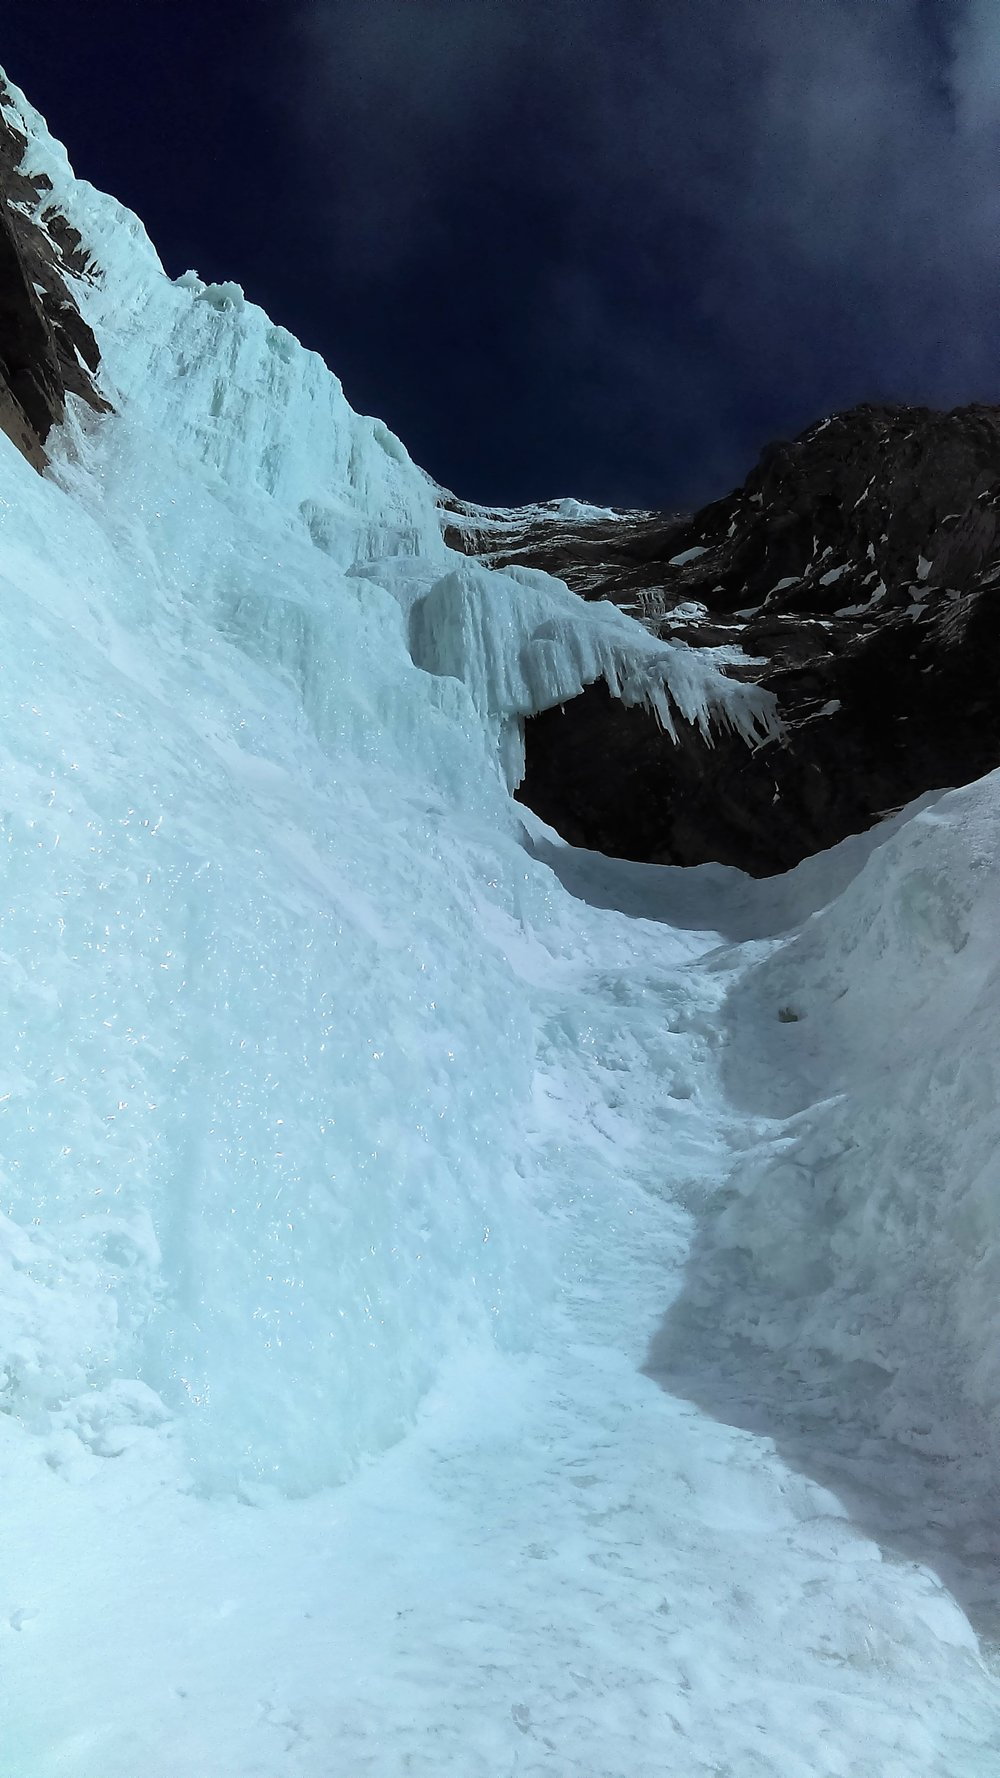 The upper section of the route. We soloed the WI2 gully to the right to the belay station in the cave.